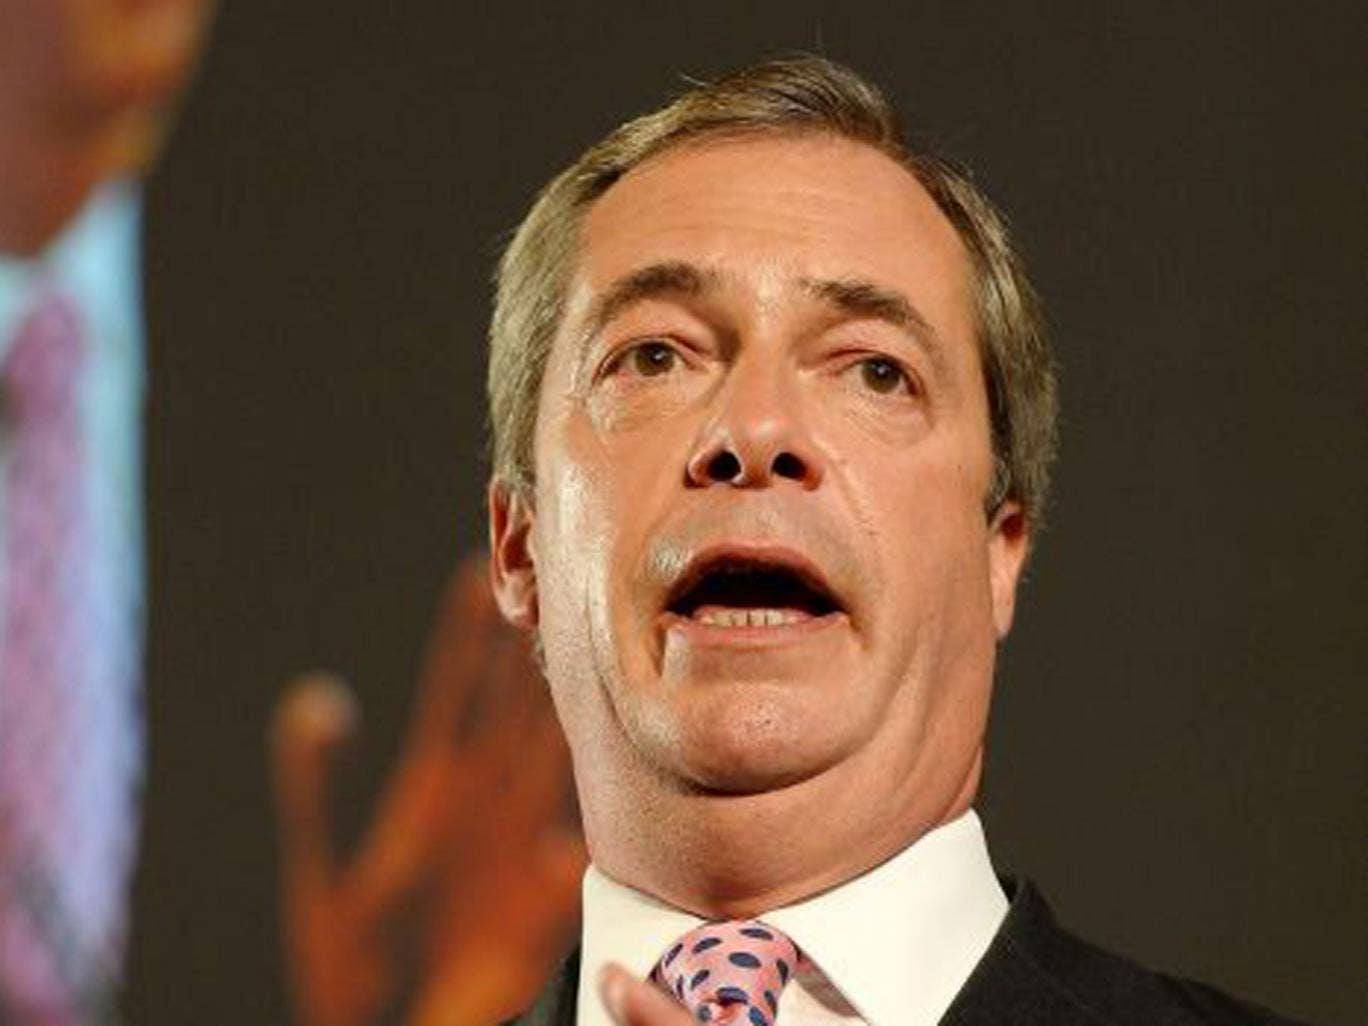 """The leader of UKIP Nigel Farage last night said that Ayling's comments were """"slightly odd"""" and admitted he did """"recruit"""" her but was not involved in her selection as a local candidate."""